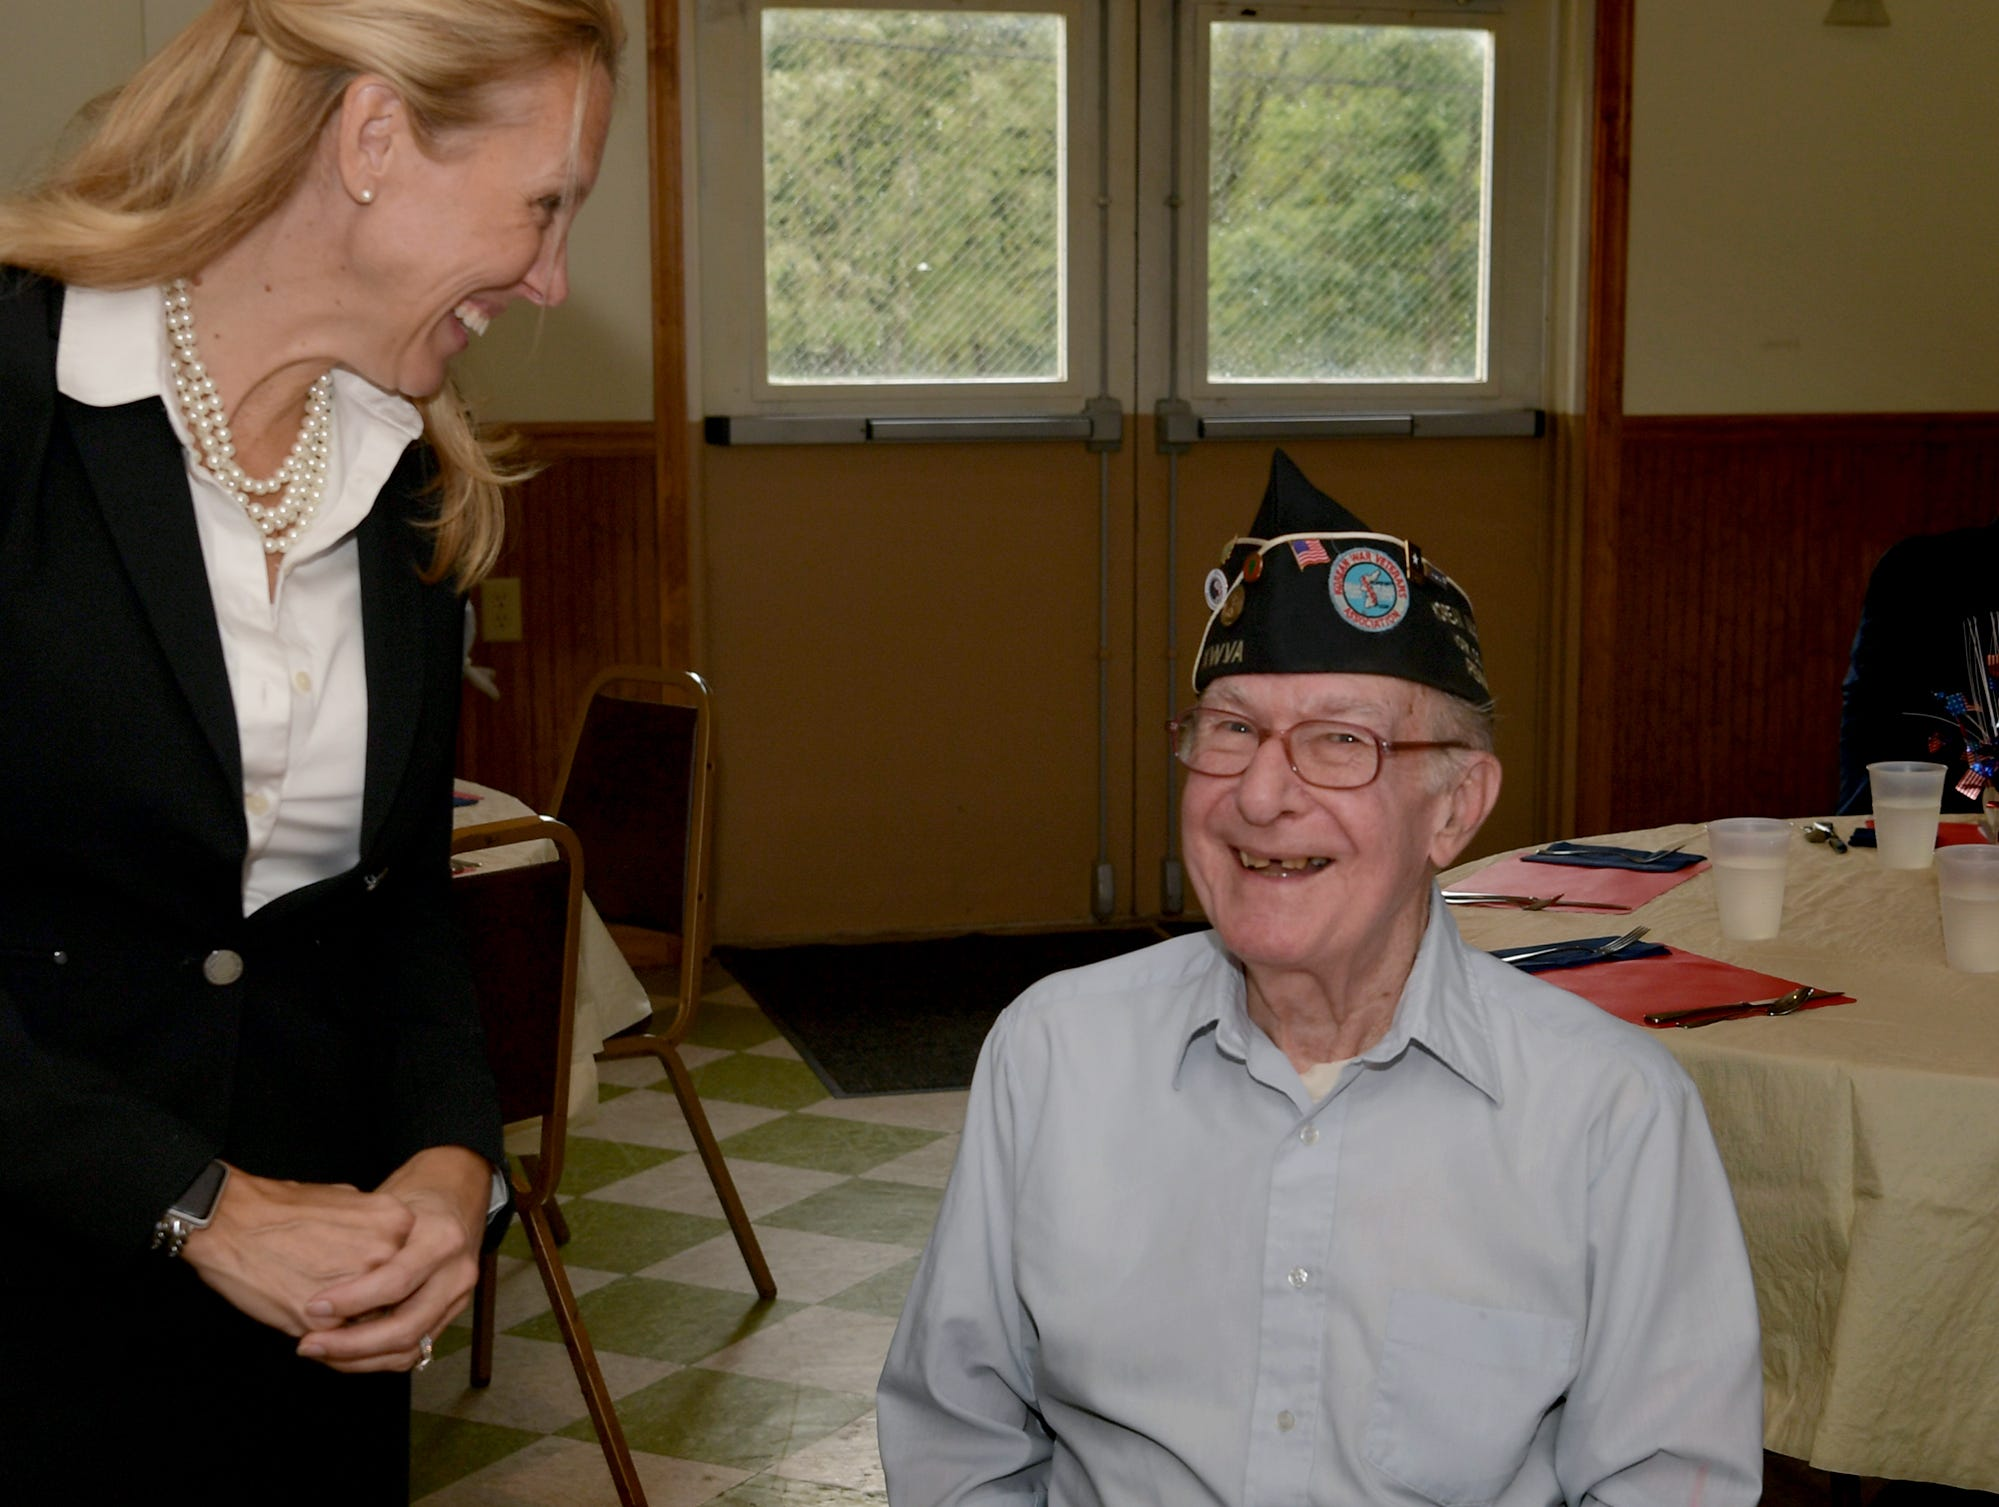 Korean War veteran Victor Aldinger of Newberry Township talks with PA State Representative Dawn Keefer during a ceremony at the James A. Danner VFW Post #537 in Newberry Township Thursday, Sept. 27, 2018. Aldinger and five other Korean War veterans received Ambassador for Peace Medals, issued by the Korean government, during the event. Keefer sponsored the event in conjunction with U.S. Senator Pat Toomey's office, which assisted in procuring the medals. Bill Kalina photo